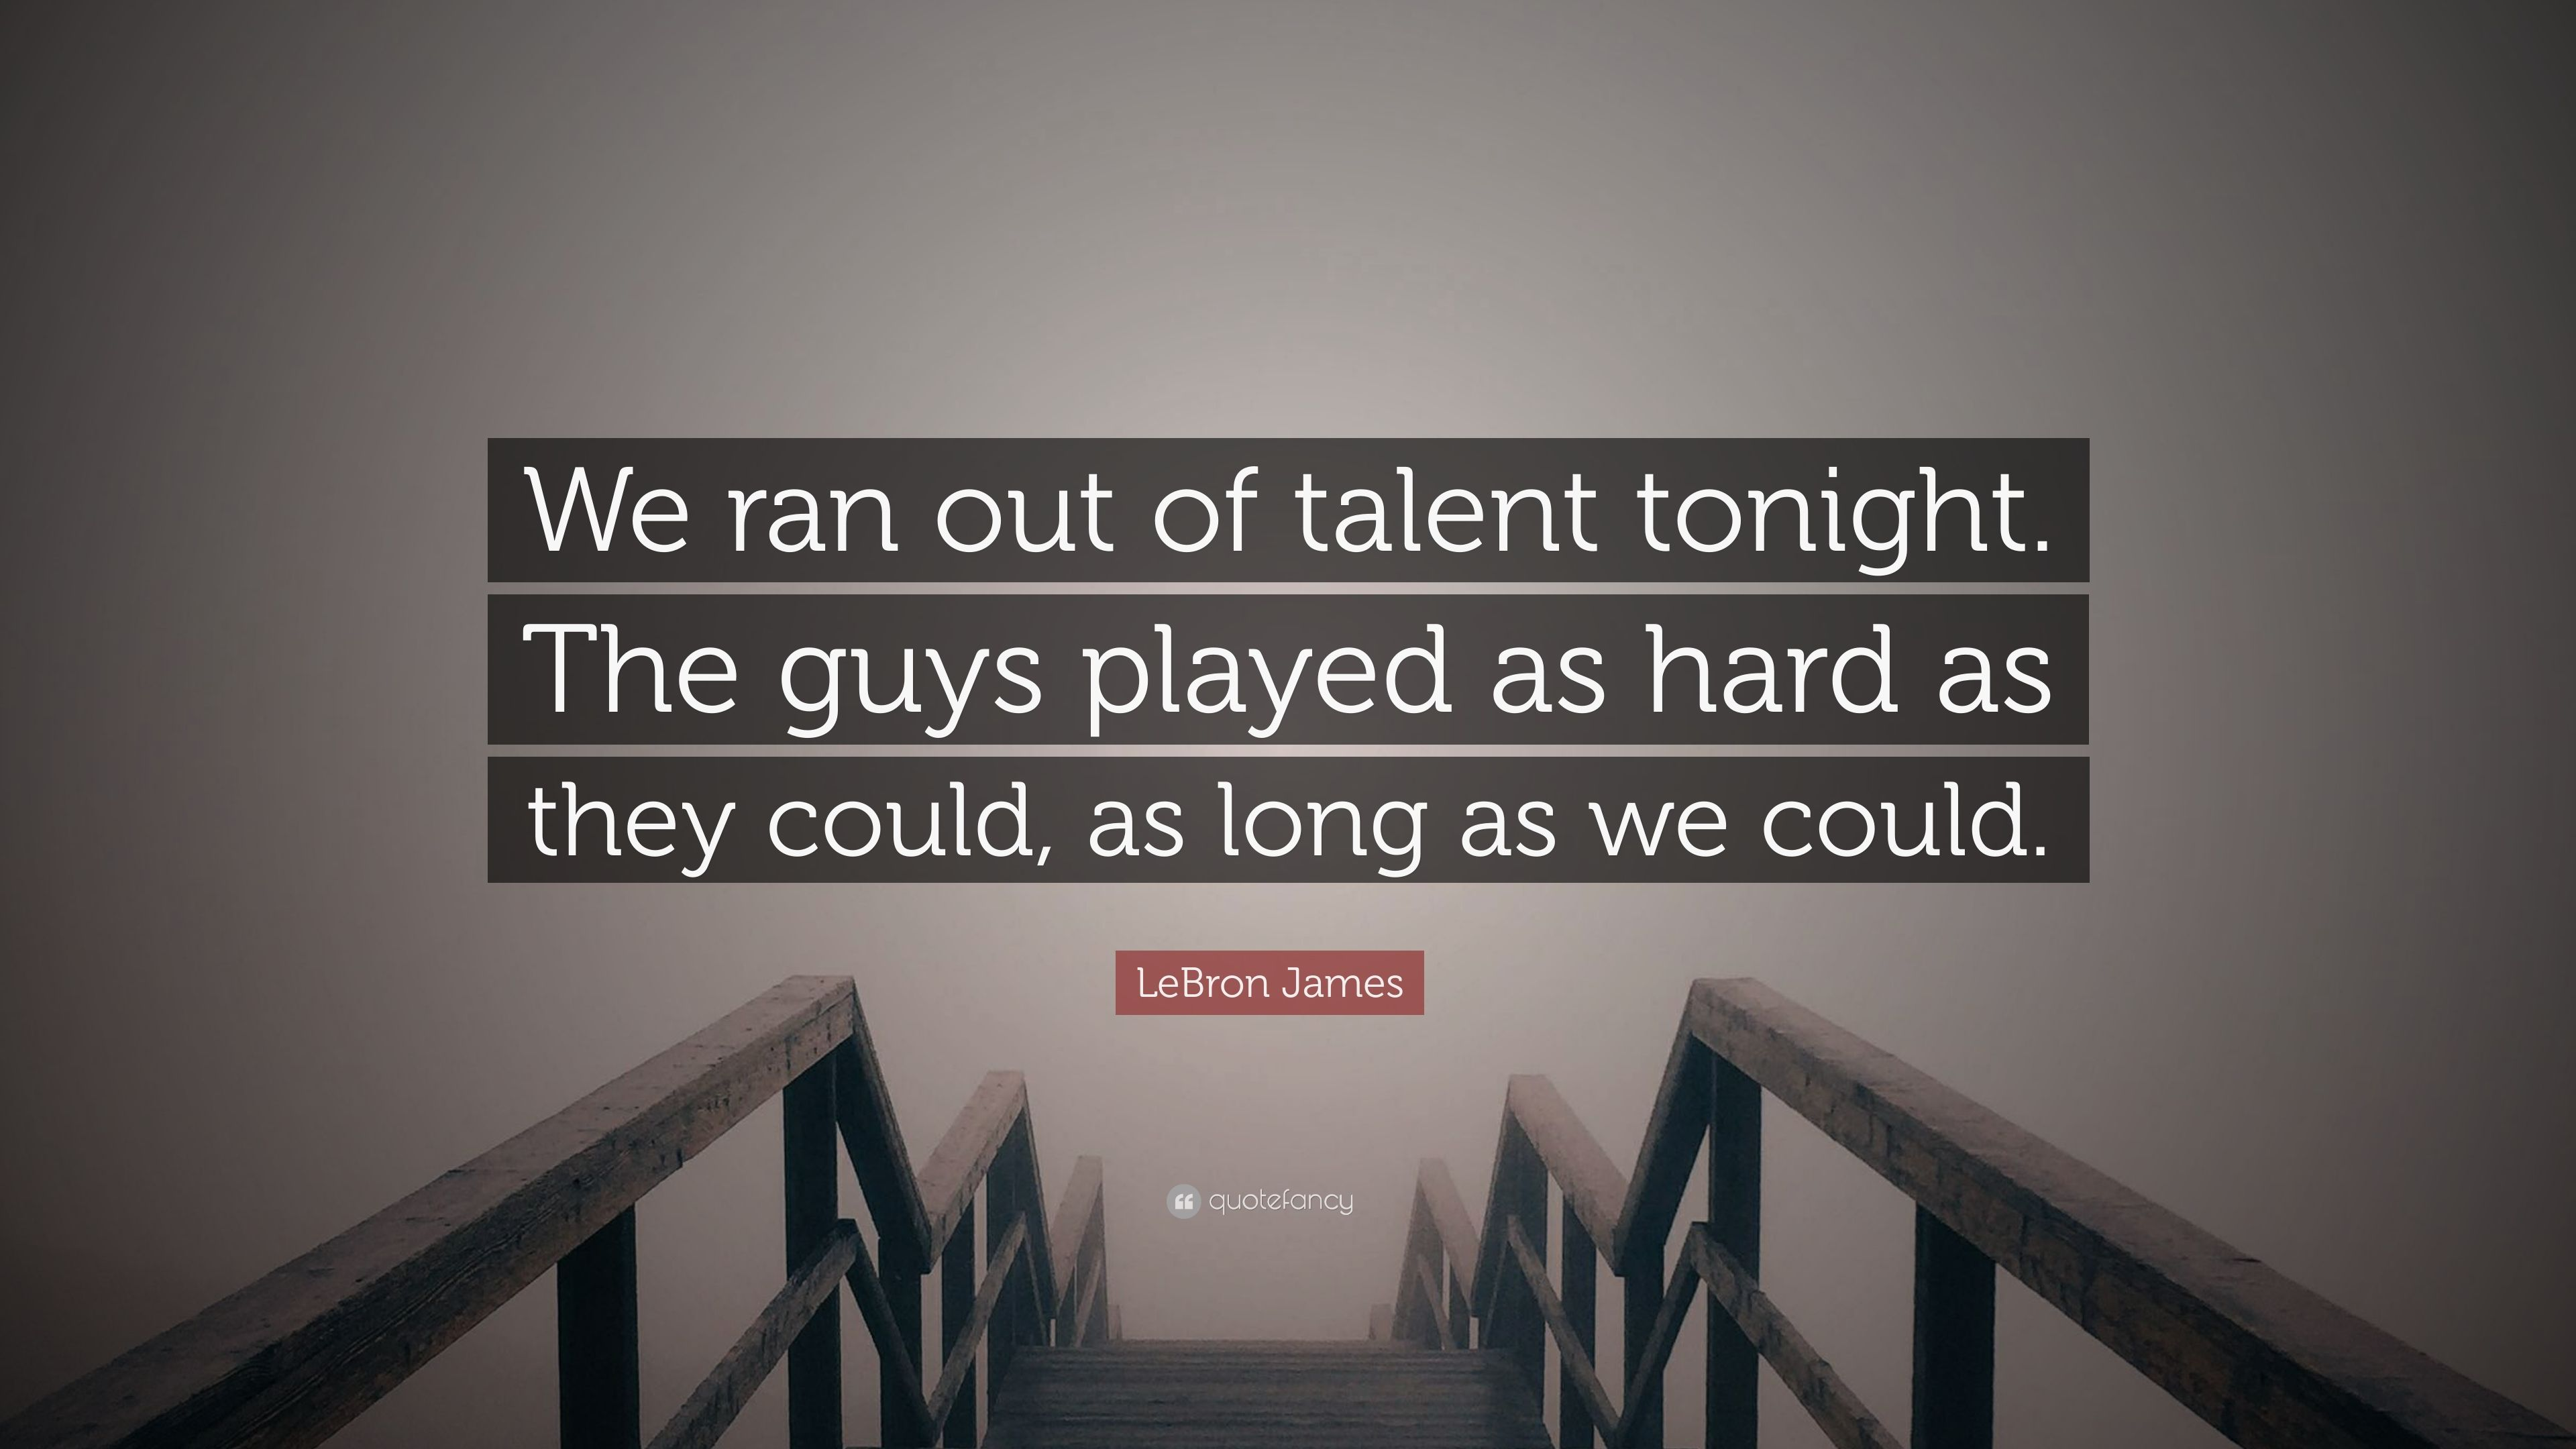 lebron james quote we ran out of talent tonight the guys played as hard as they could as long as we could 7 wallpapers quotefancy quotefancy